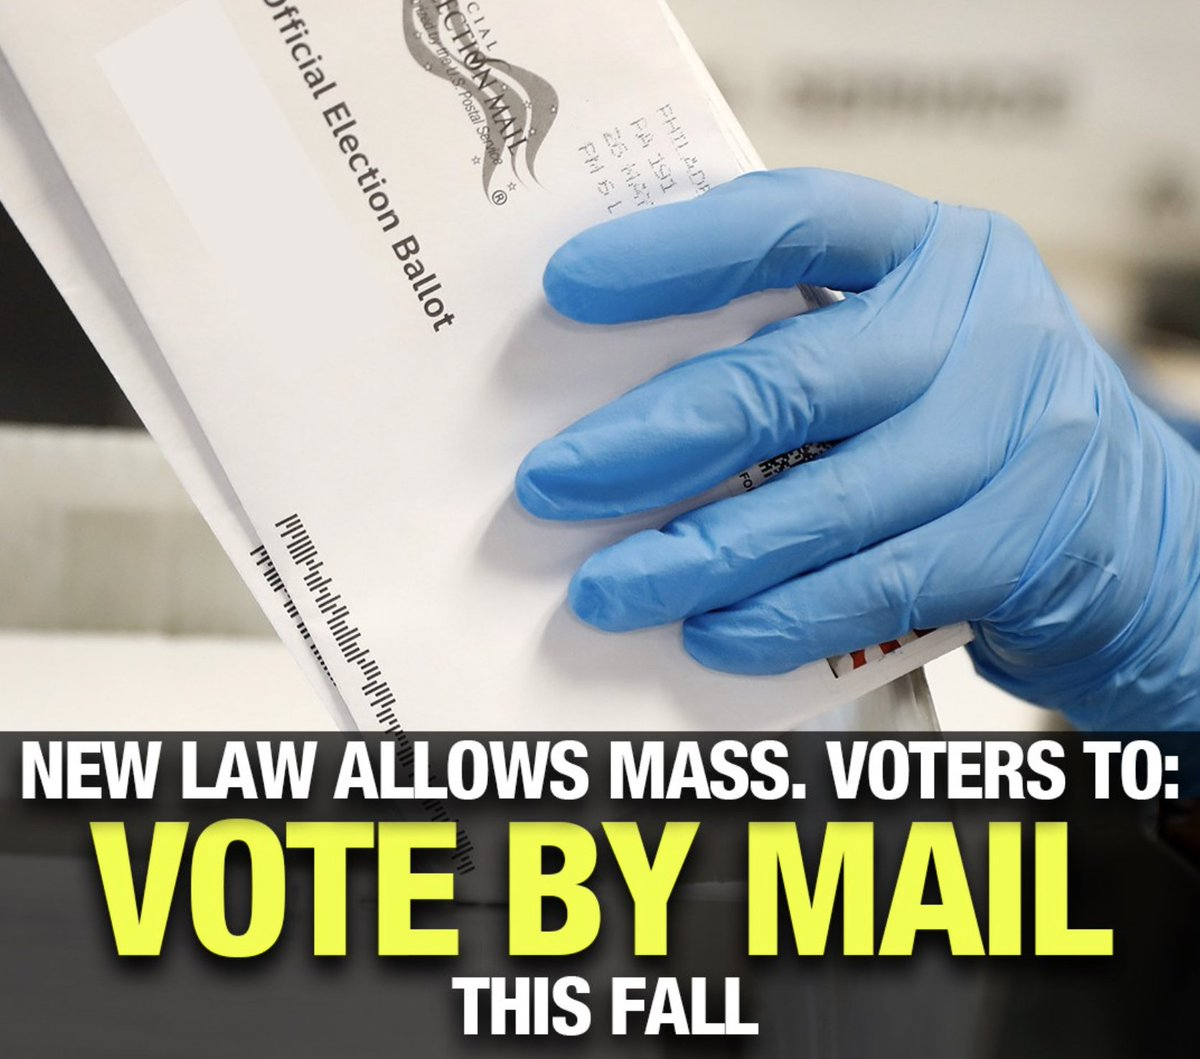 Attention Massachusetts voters! 🗳️ You can now vote by mail in 2020 elections without any excuse. Details on how it will work --> boston25.com/3gv2pOS #VoteByMail2020